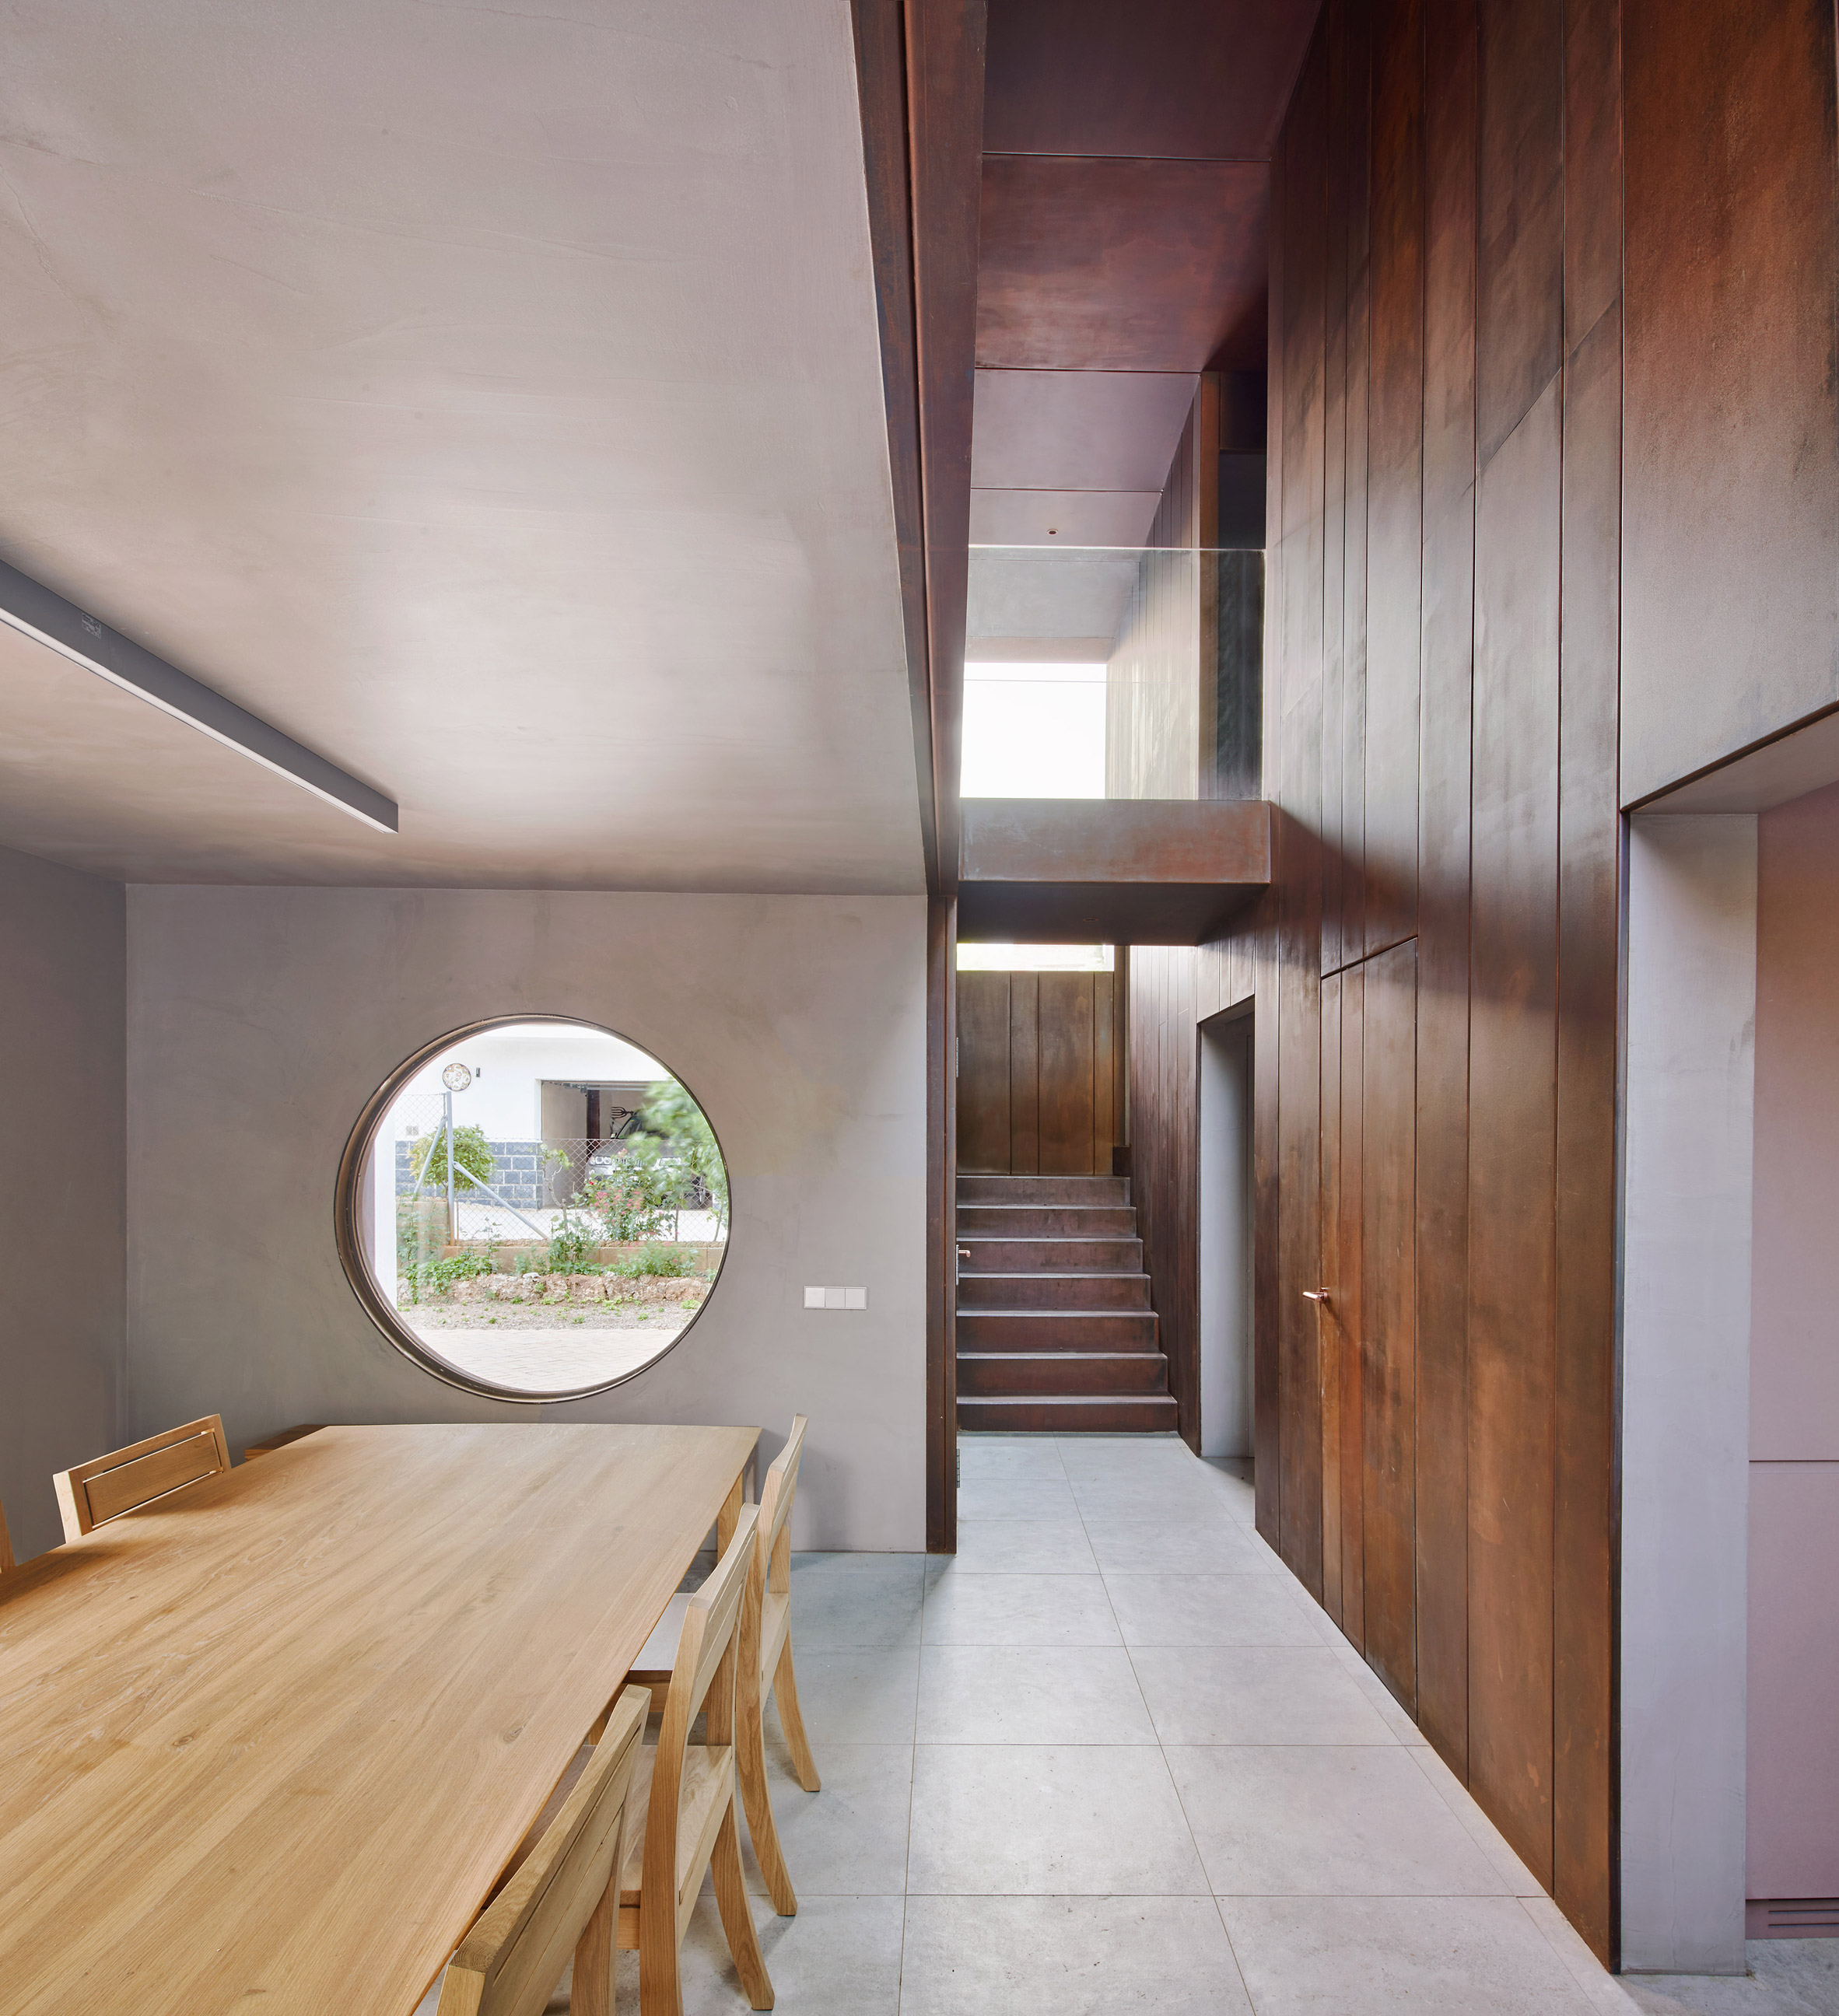 Gallery House by Raúl Sánchez Architects dining room